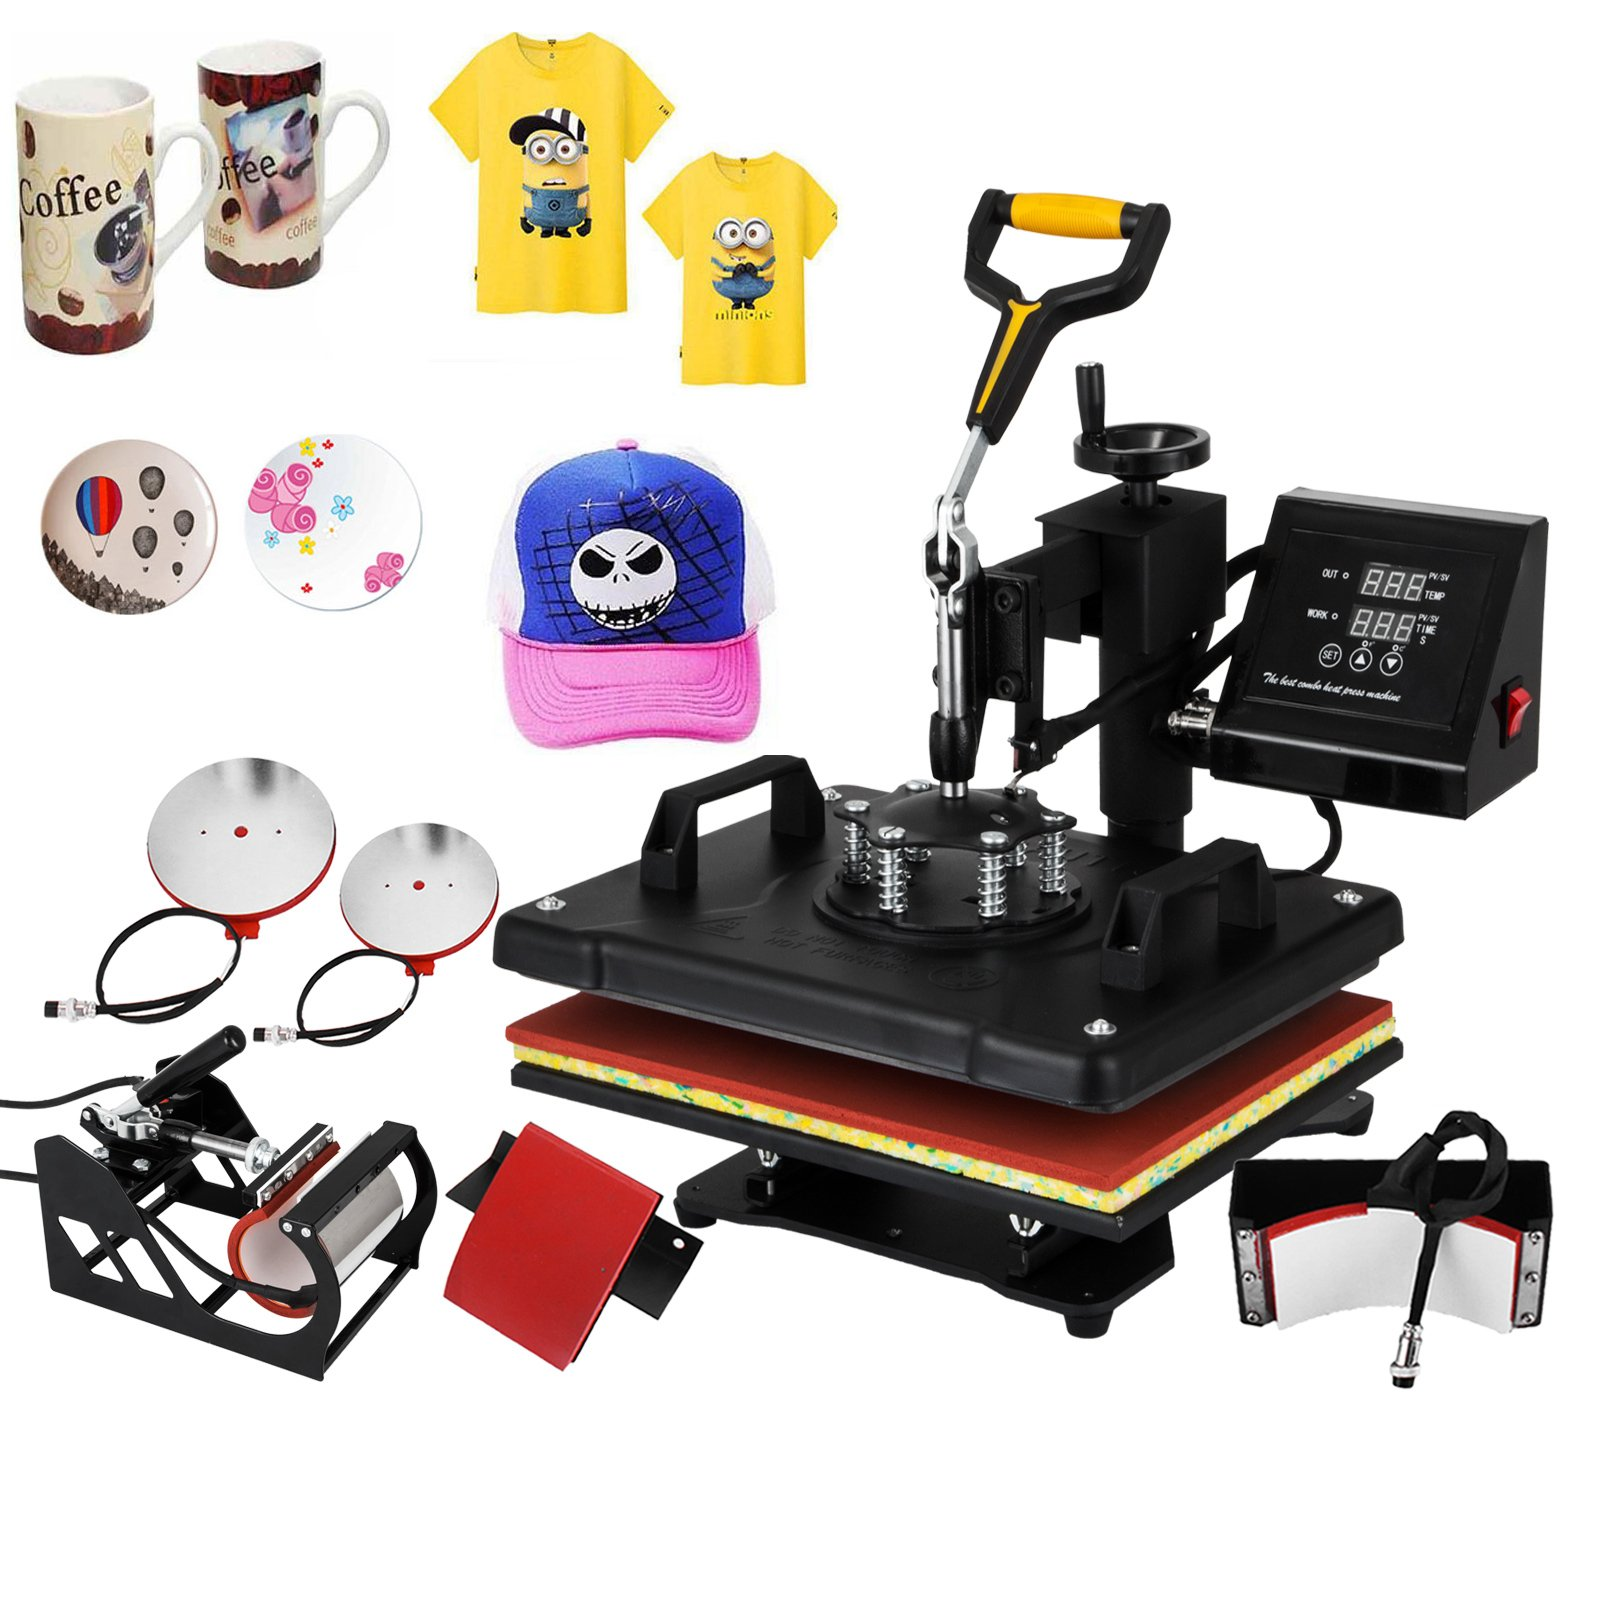 Happybuy Heat Press Machine 12x15 Inch 360 Degree Swing Away Heat Press 5 IN1 Multifunction Sublimation T Shirt Press Mug Cap Plate with Dual Digital Controller (5in1 15'' x 12'' Swing Away) by Happybuy